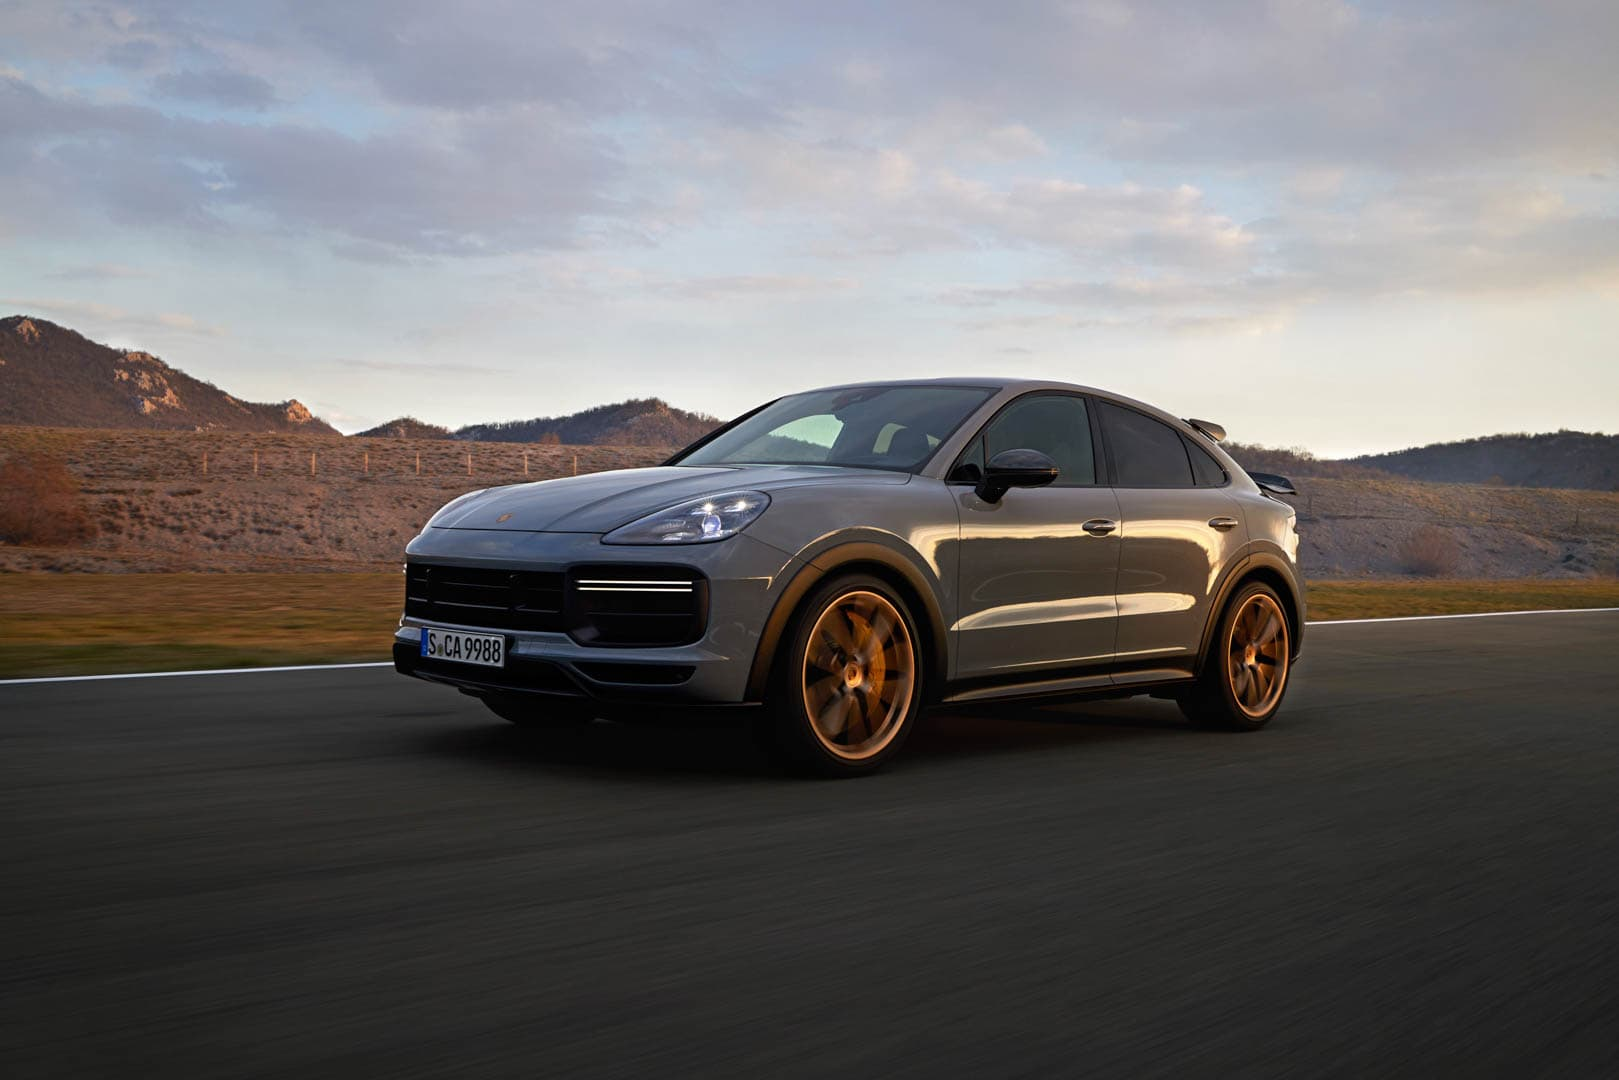 Porsche Cayenne Coupe Turbo GT 1 of 2